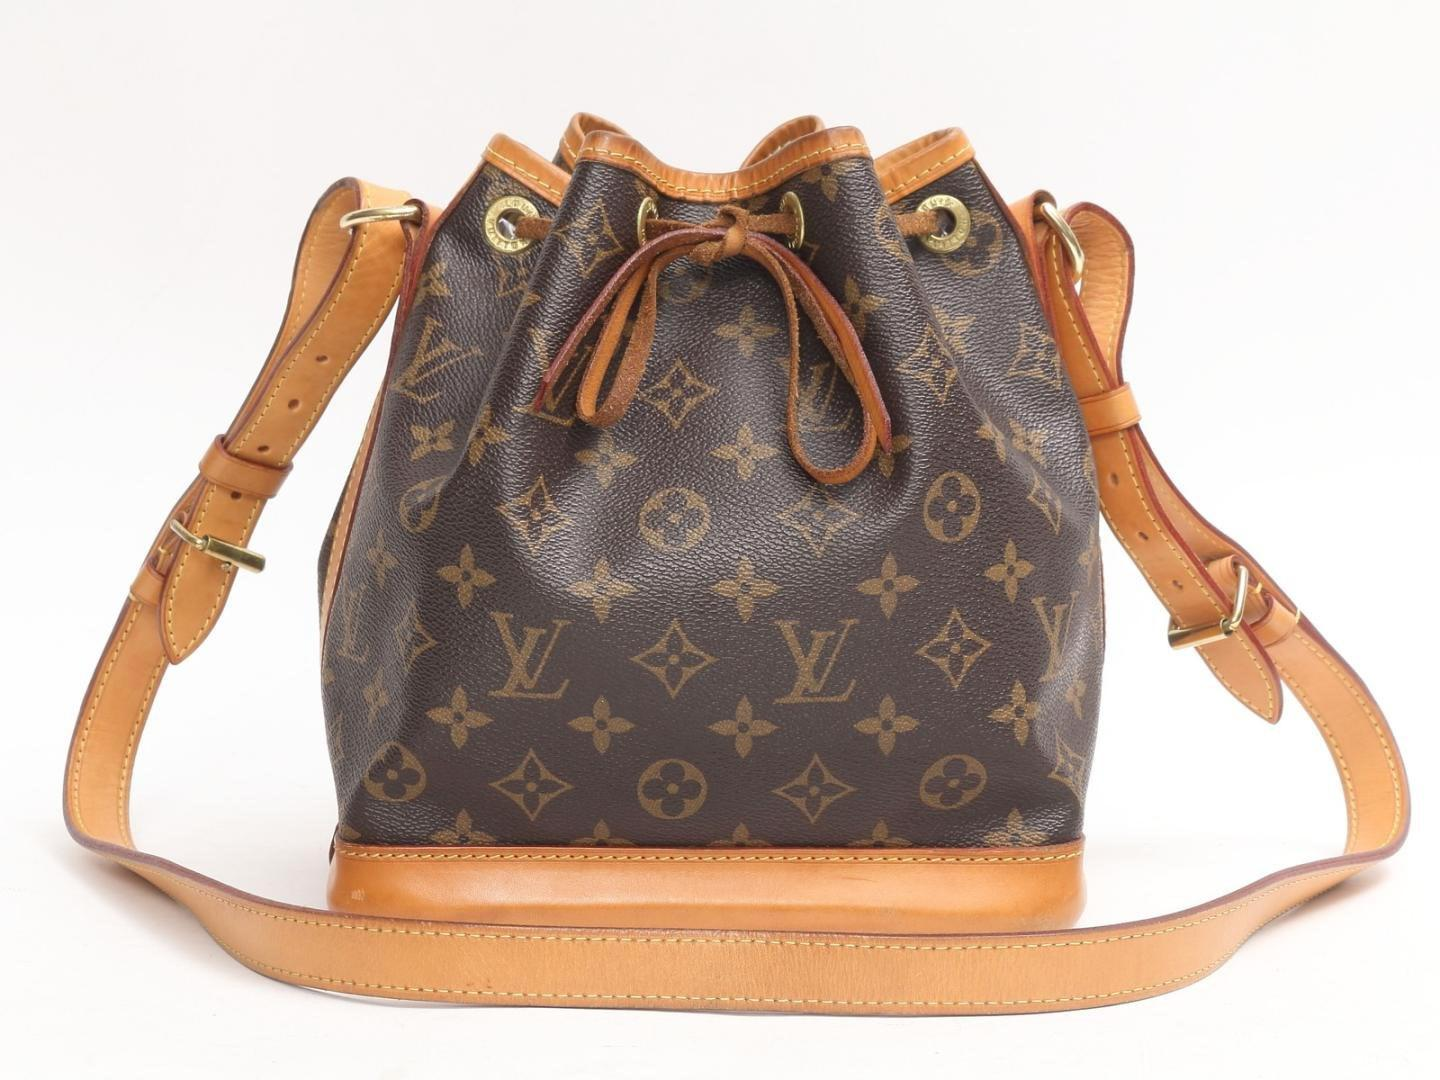 e692b8f12af1 Gallery. Previously sold at  Reebonz · Women s Sonia Rykiel Le Copain  Women s Louis Vuitton ...